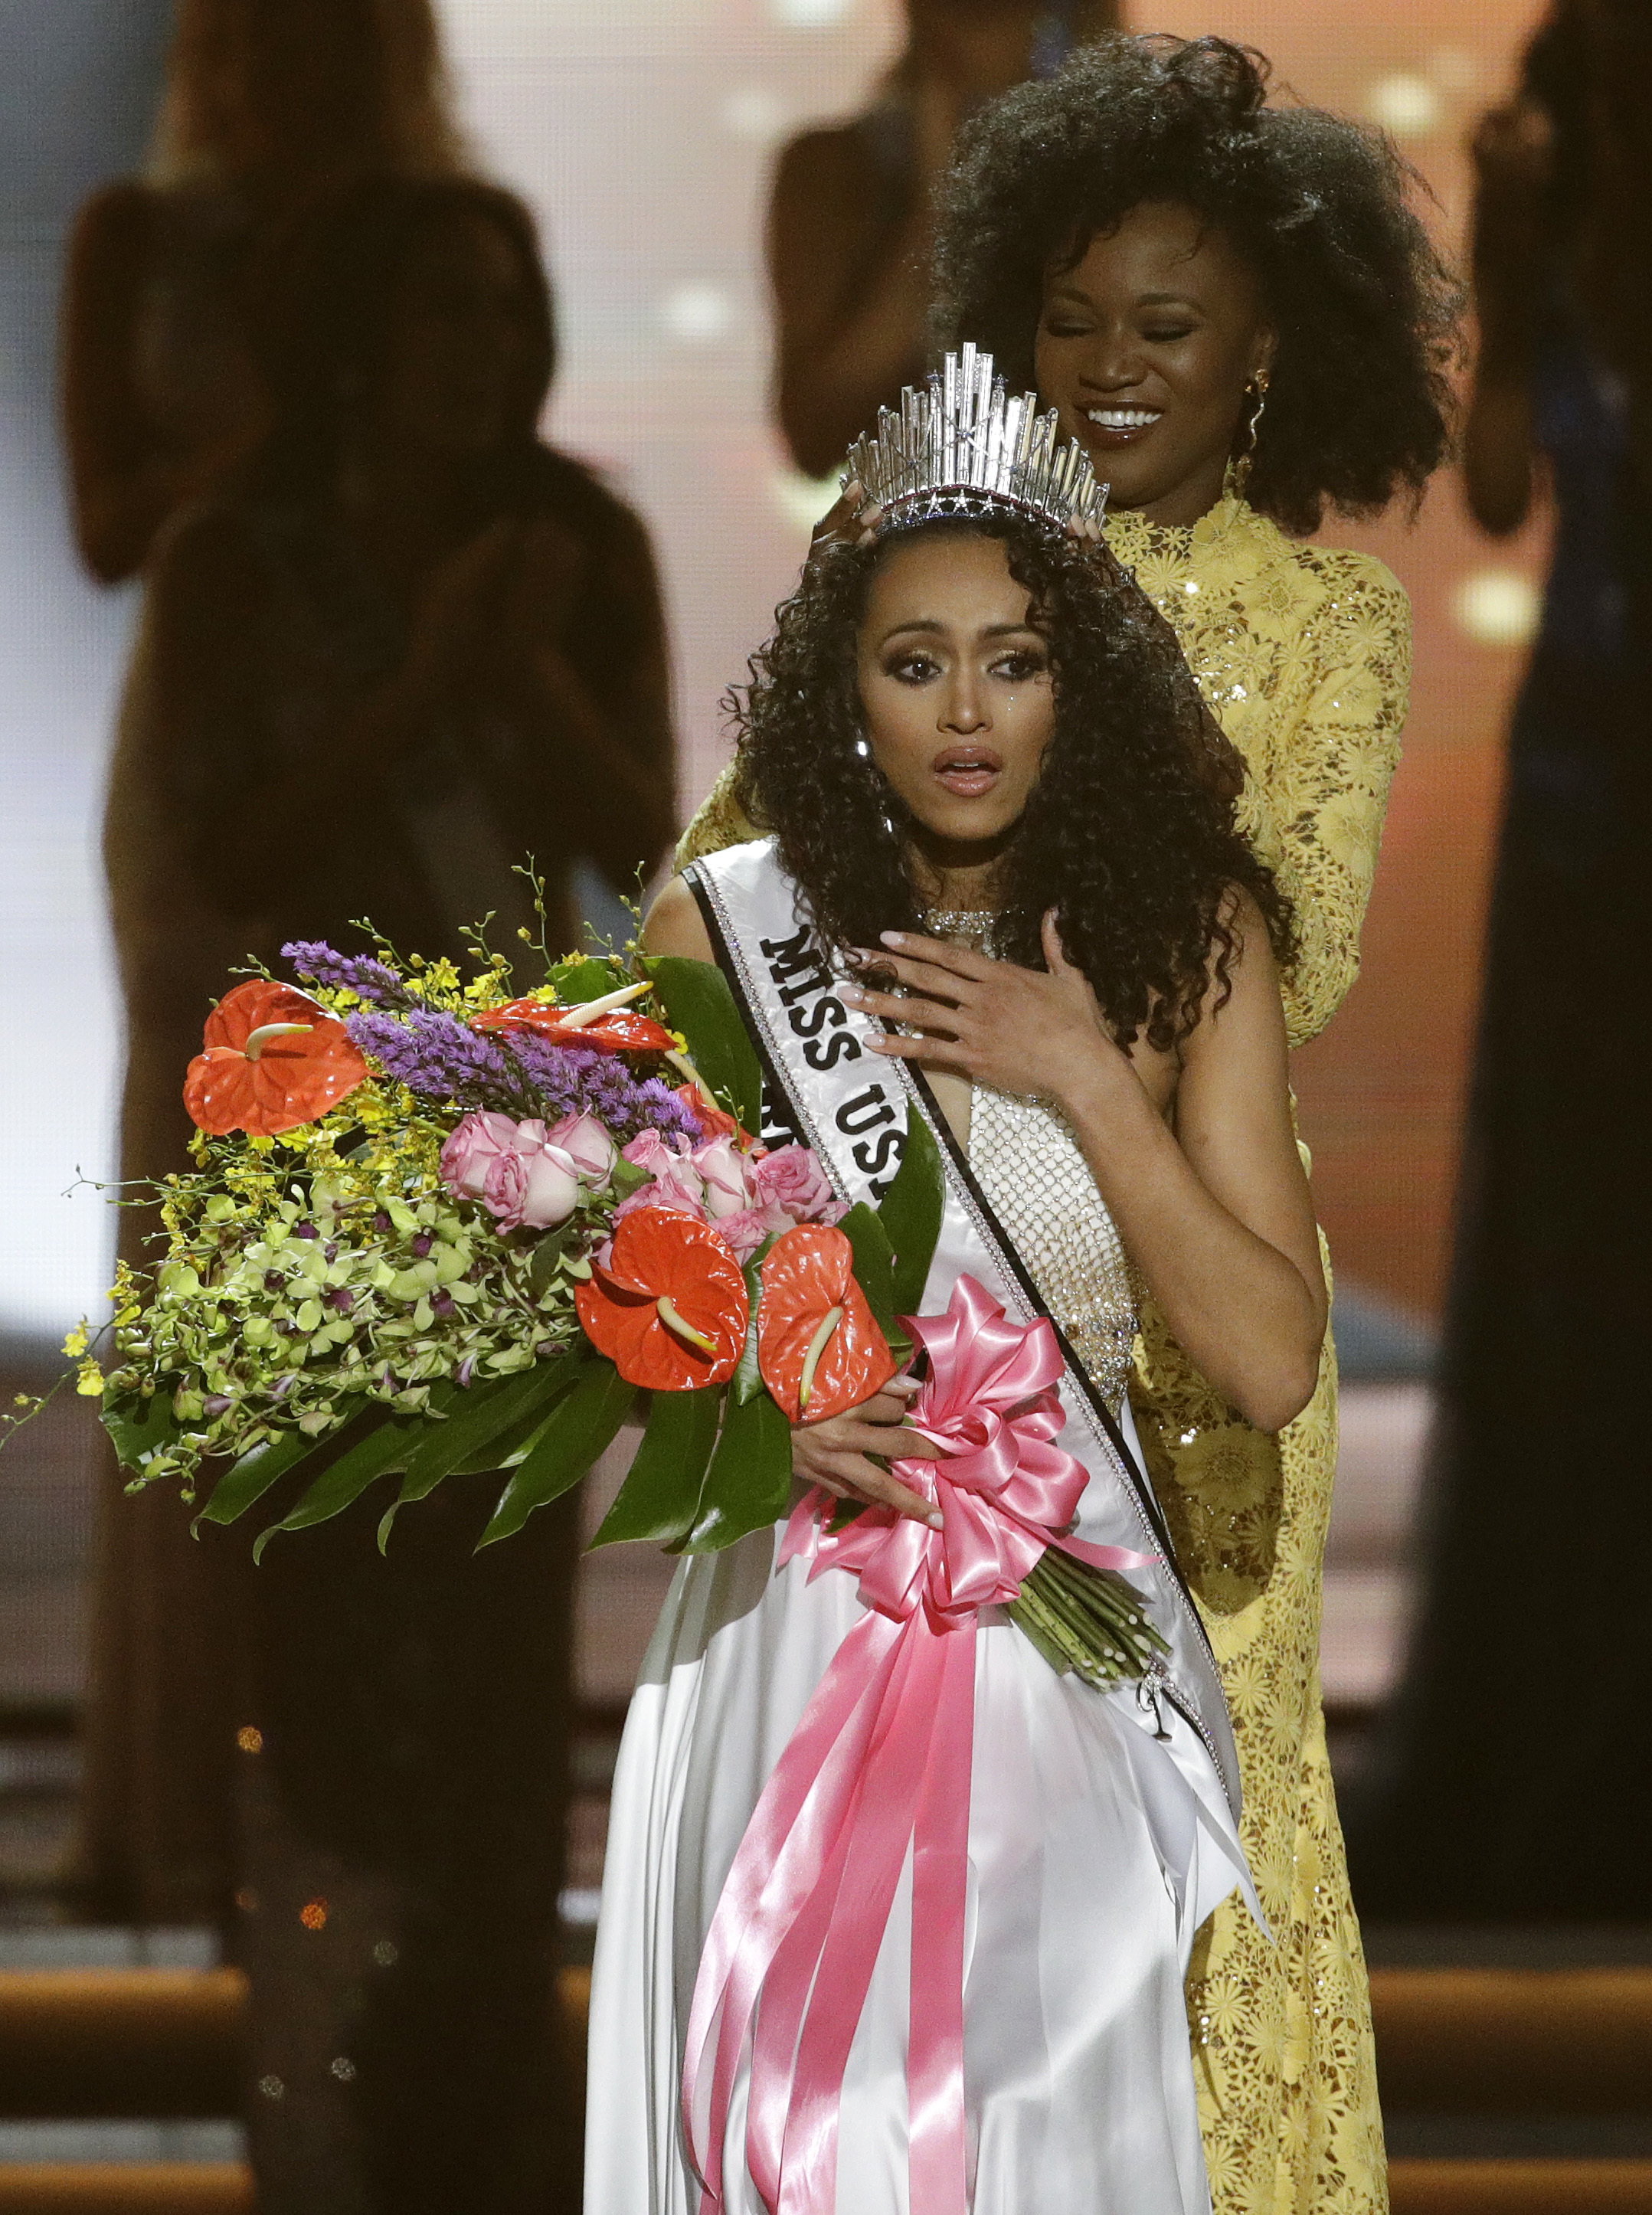 Miss USA-1 Miss District of Columbia USA Kara McCullough reacts as she is crowned the new Miss USA by former Miss USA Deshauna Barber during the Miss USA contest Sunday, May 14, 2017, in Las Vegas. (AP Photo/John Locher)